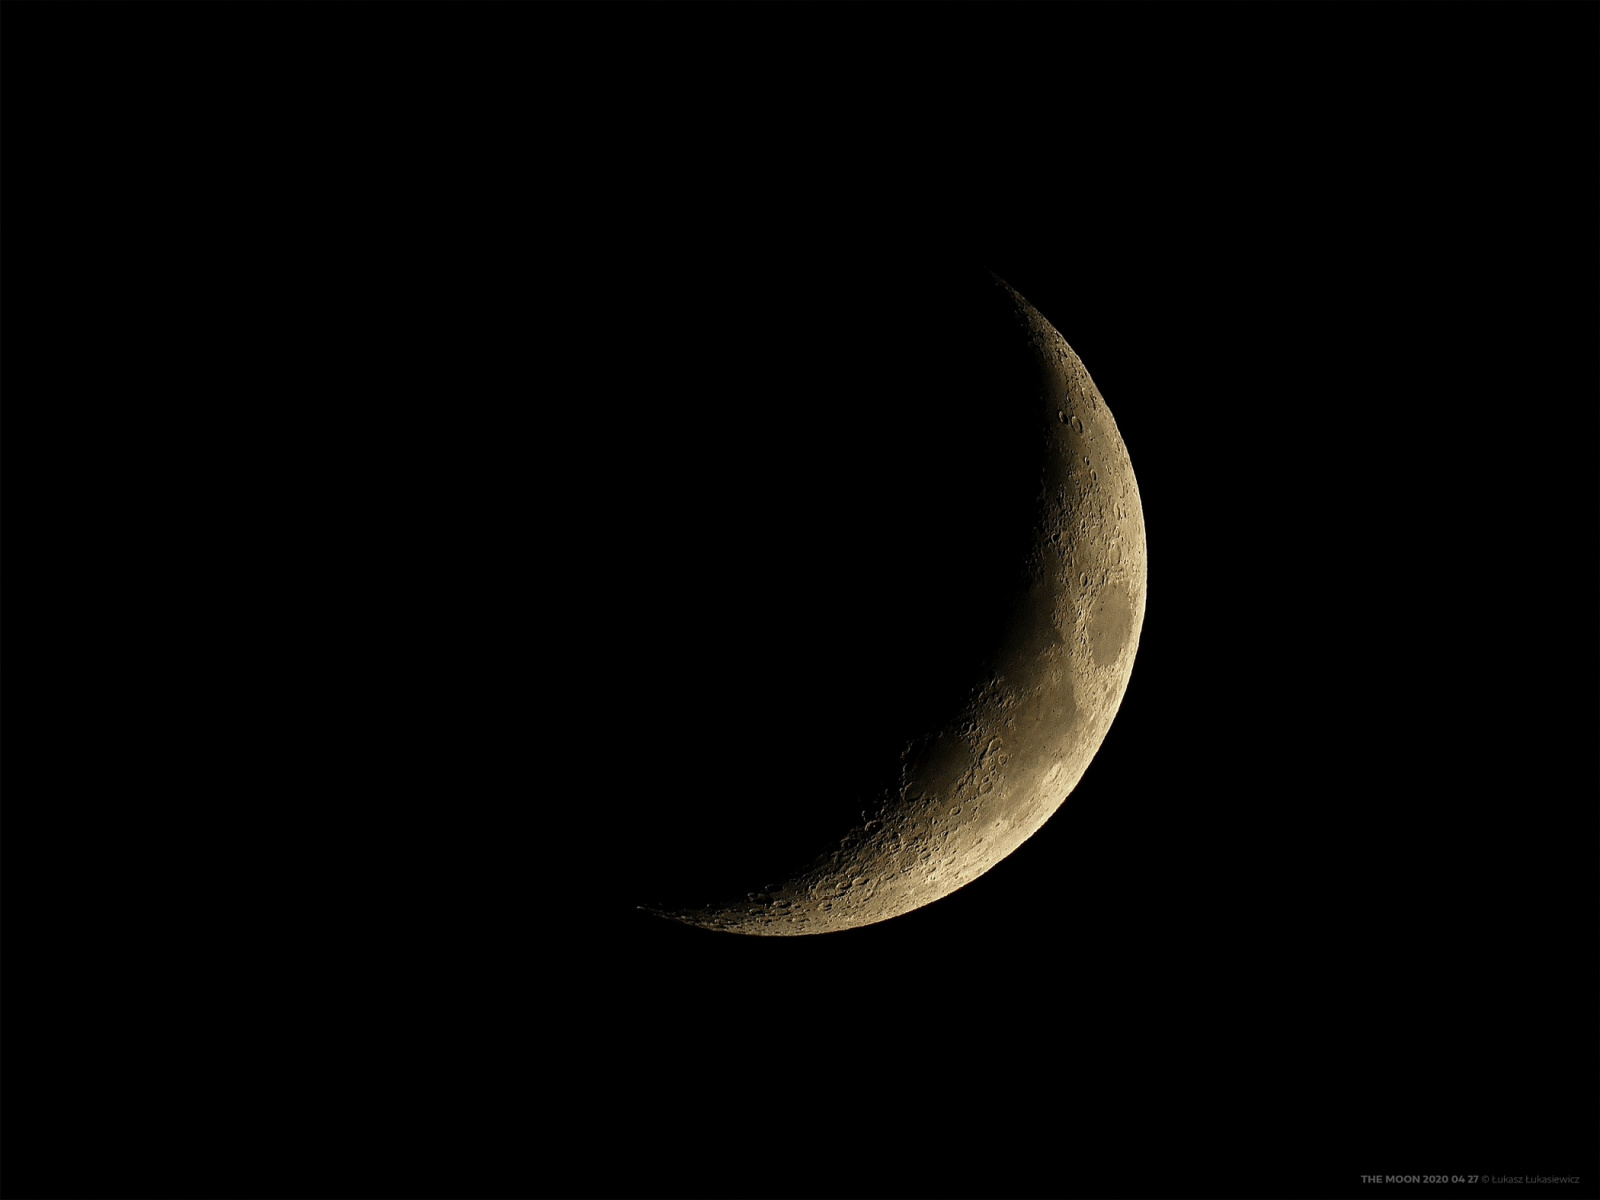 THE-MOON-2020-04-27.thumb.jpg.da3b325137df46a358174b0052308bef.jpg